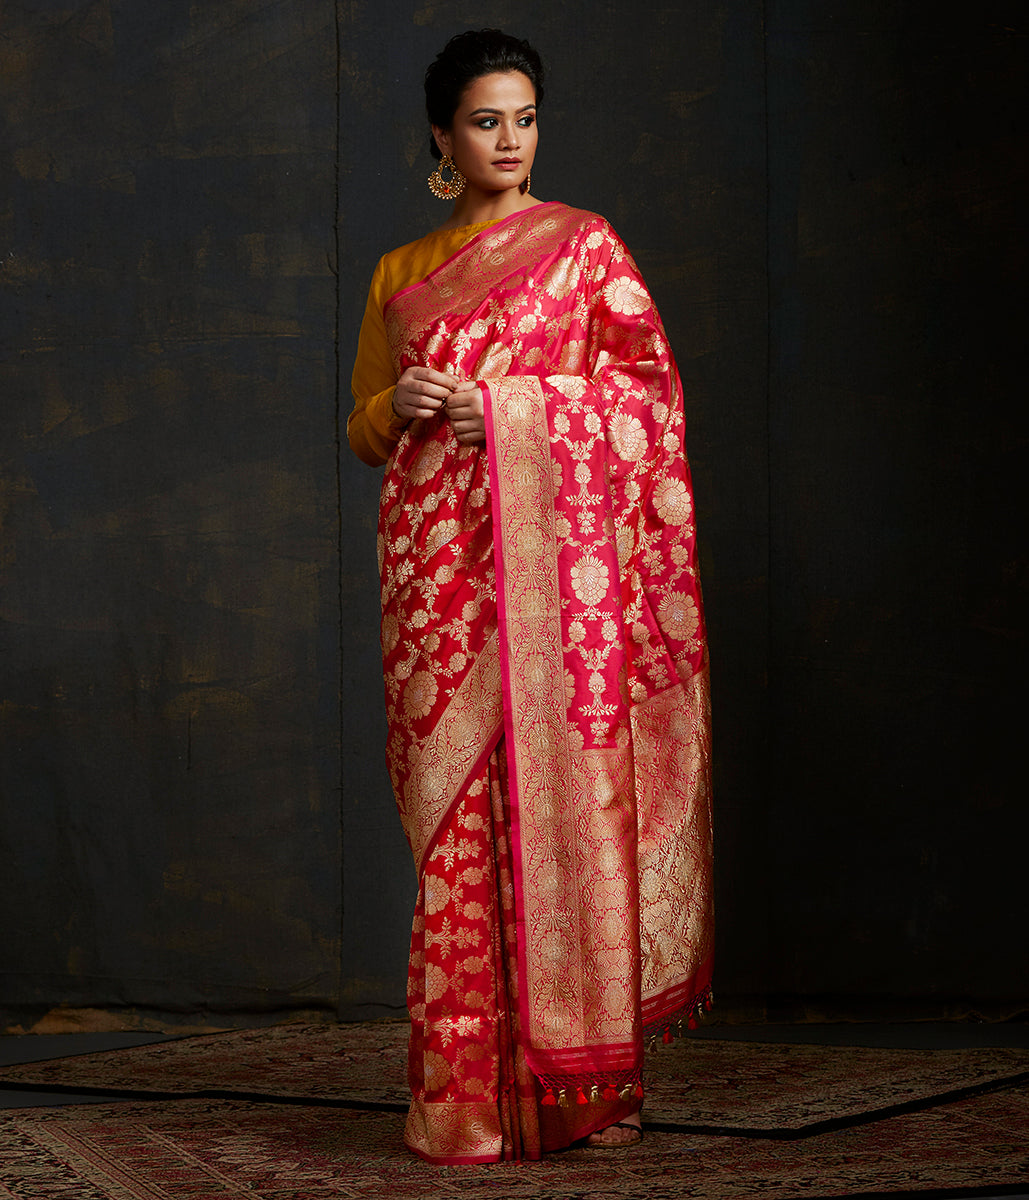 Rani pink and Red sona rupa kadhwa jangla with intricate floral jaal